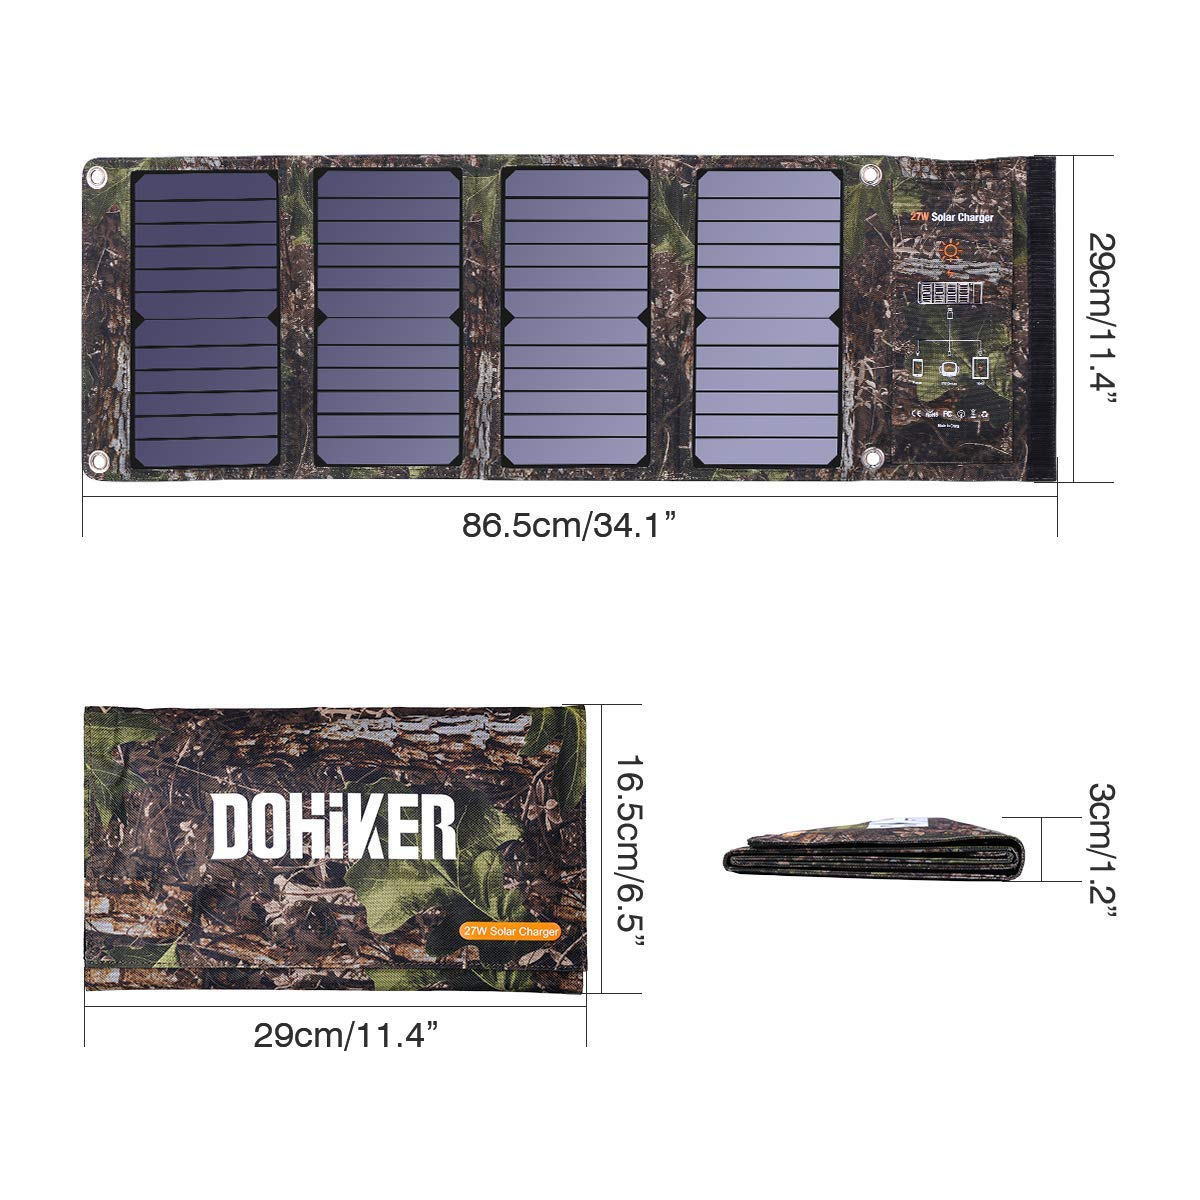 Dohiker Portable Foldable Solar Panel Charger, 27W Solar Phone Charger with 3 USB Ports,Durable & Waterproof Solar Charger for Cell Phone, PowerBank, and Electronic Devices, Great for Camping, Hiking by Dohiker (Image #8)